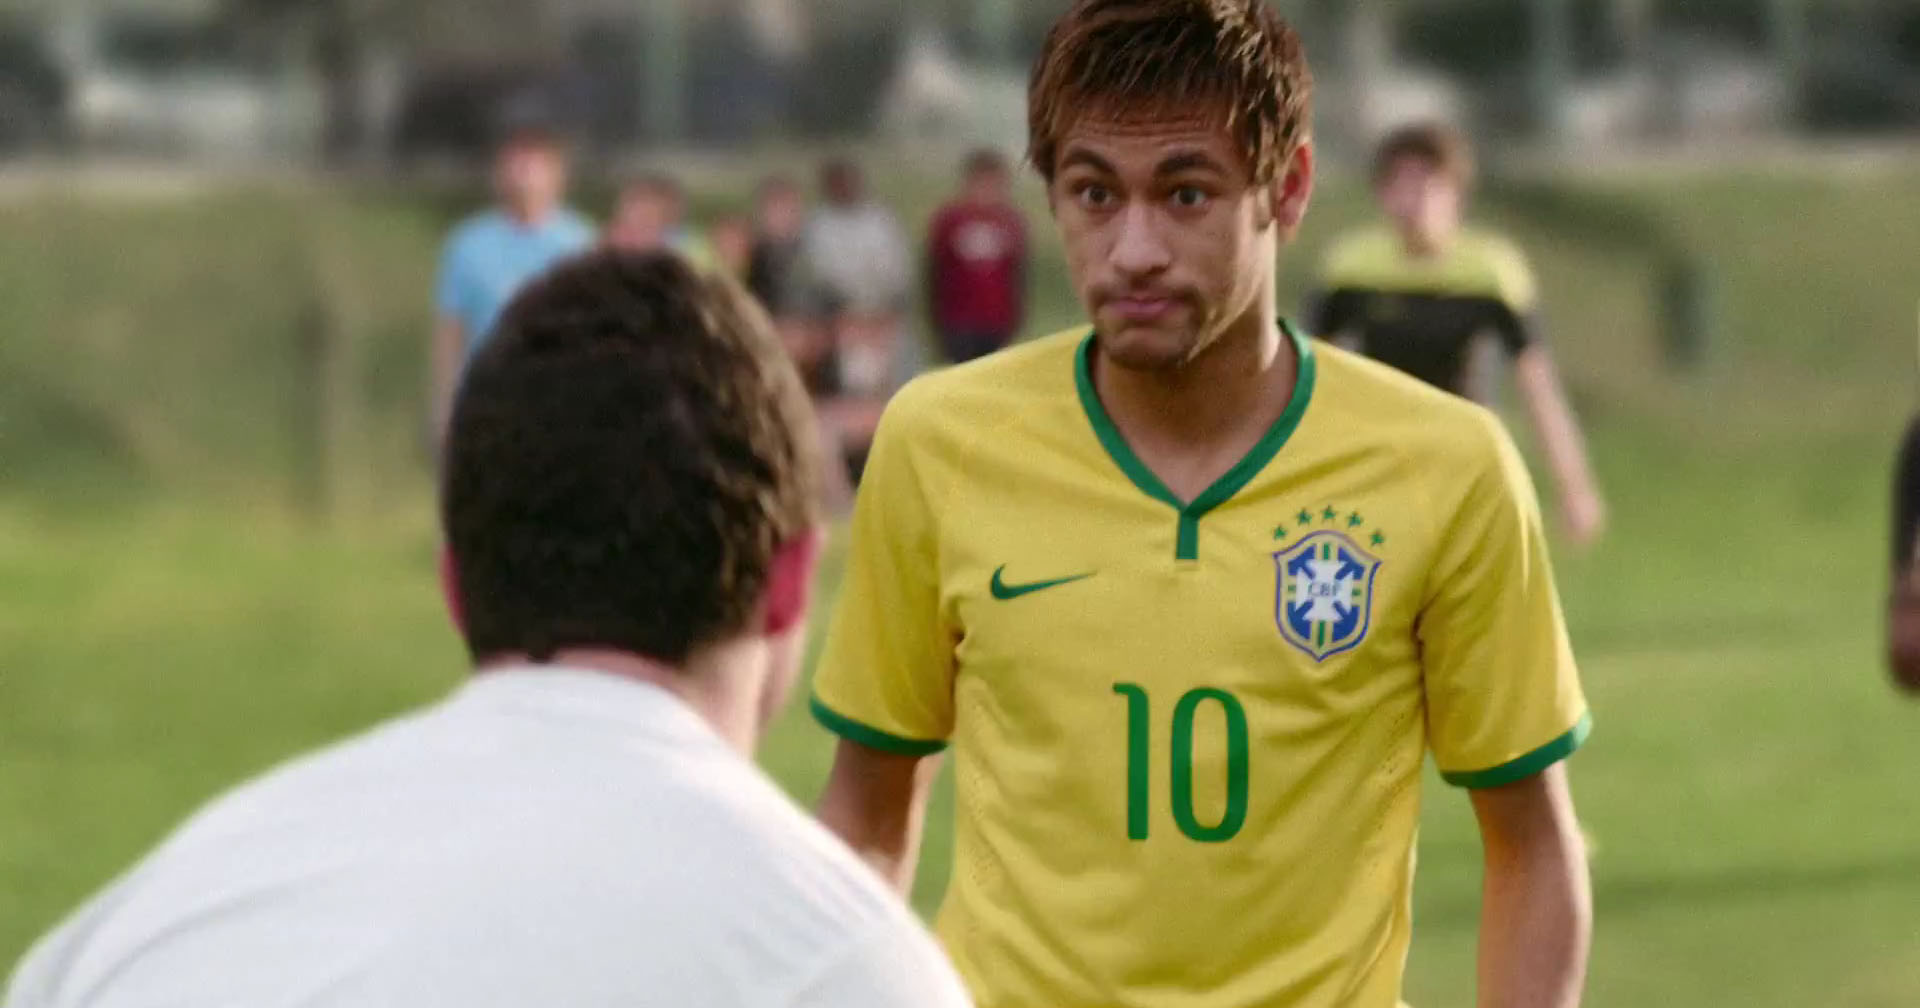 Neymar with bulging eyes in Nike's new video ad